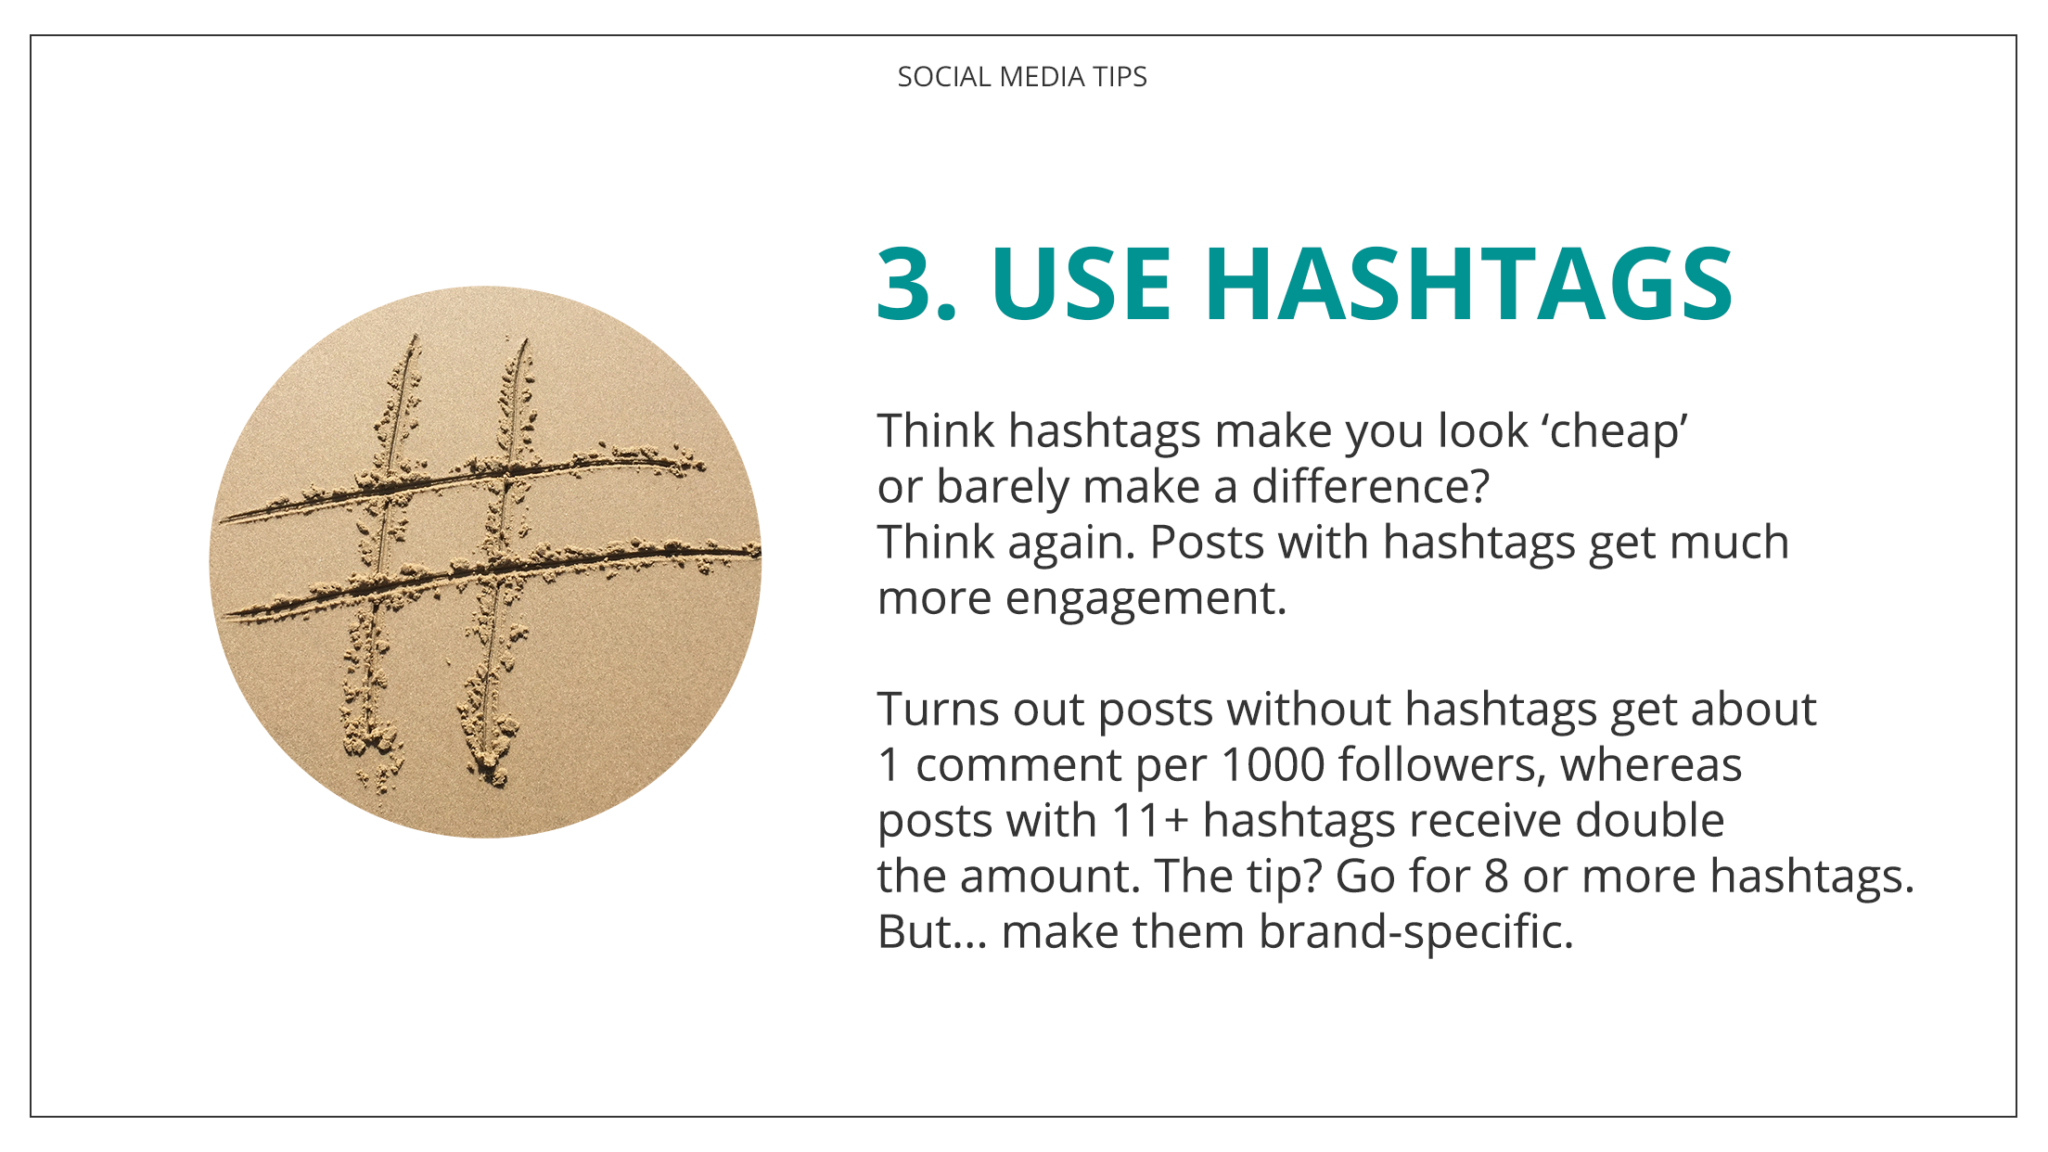 Think hashtags make you look 'cheap' or barely make a difference? Think again. Posts with hashtags get much more engagement. Turns out posts without hashtags get about 1 comment per 1000 followers, whereas posts with 11+ hashtags receive double the amount. The tip? Go for 8 or more hashtags. But... make them brand-specific.